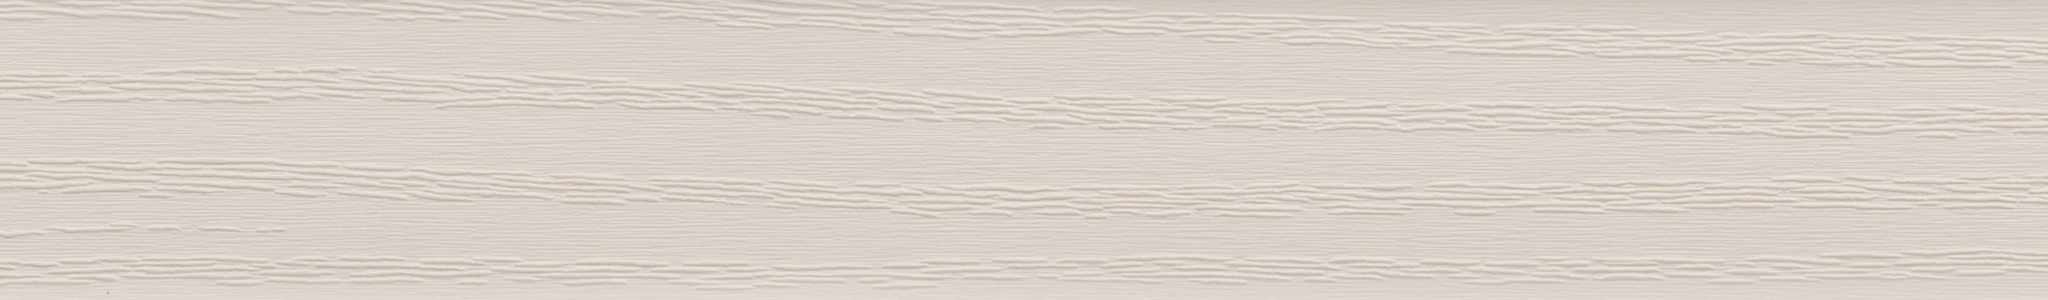 HU 127049 ABS Edge Beige Pore 109